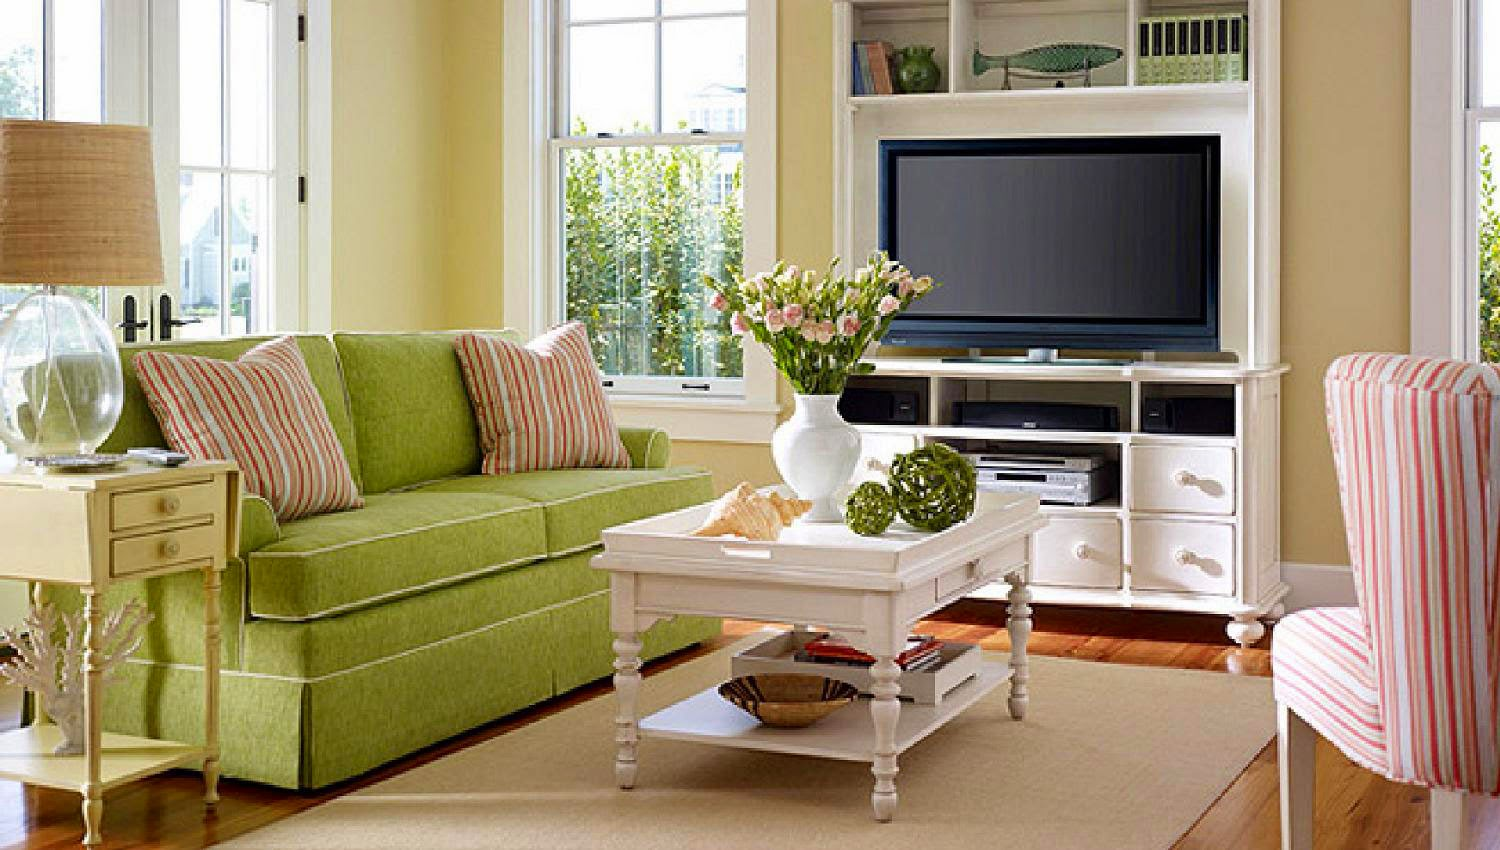 Guest-Minimalist-Chairs-Sofa-Green-Beautiful